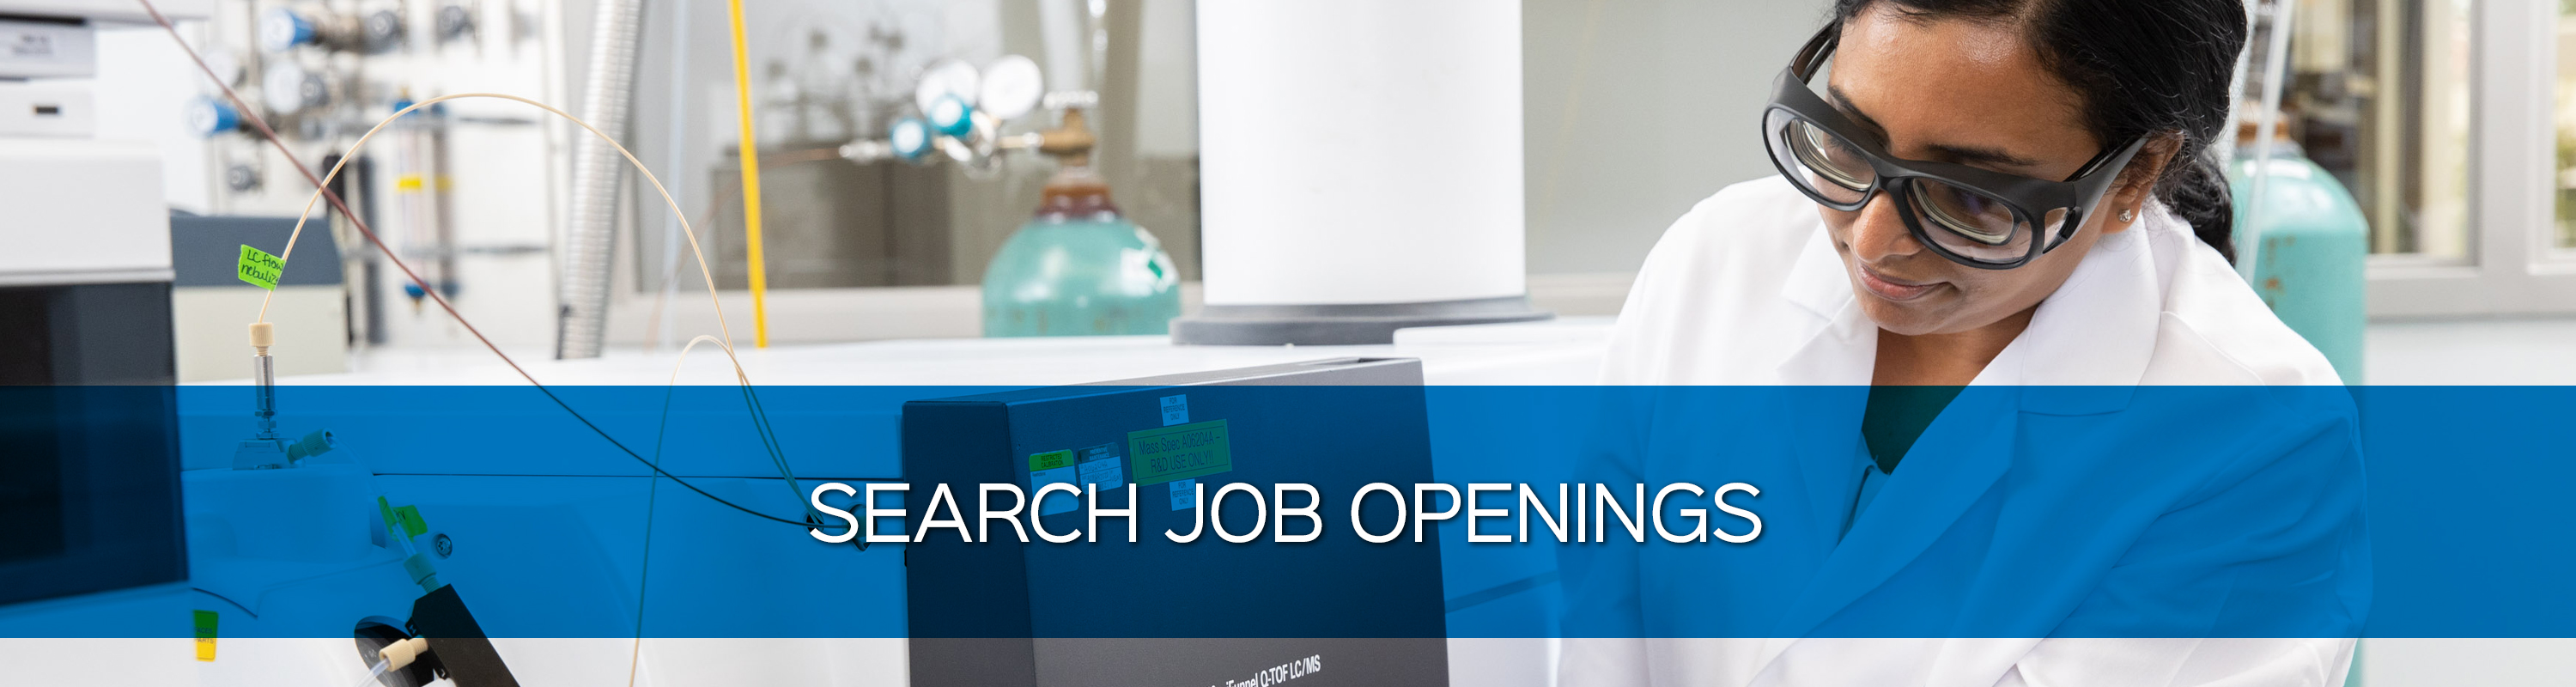 Search Job Openings